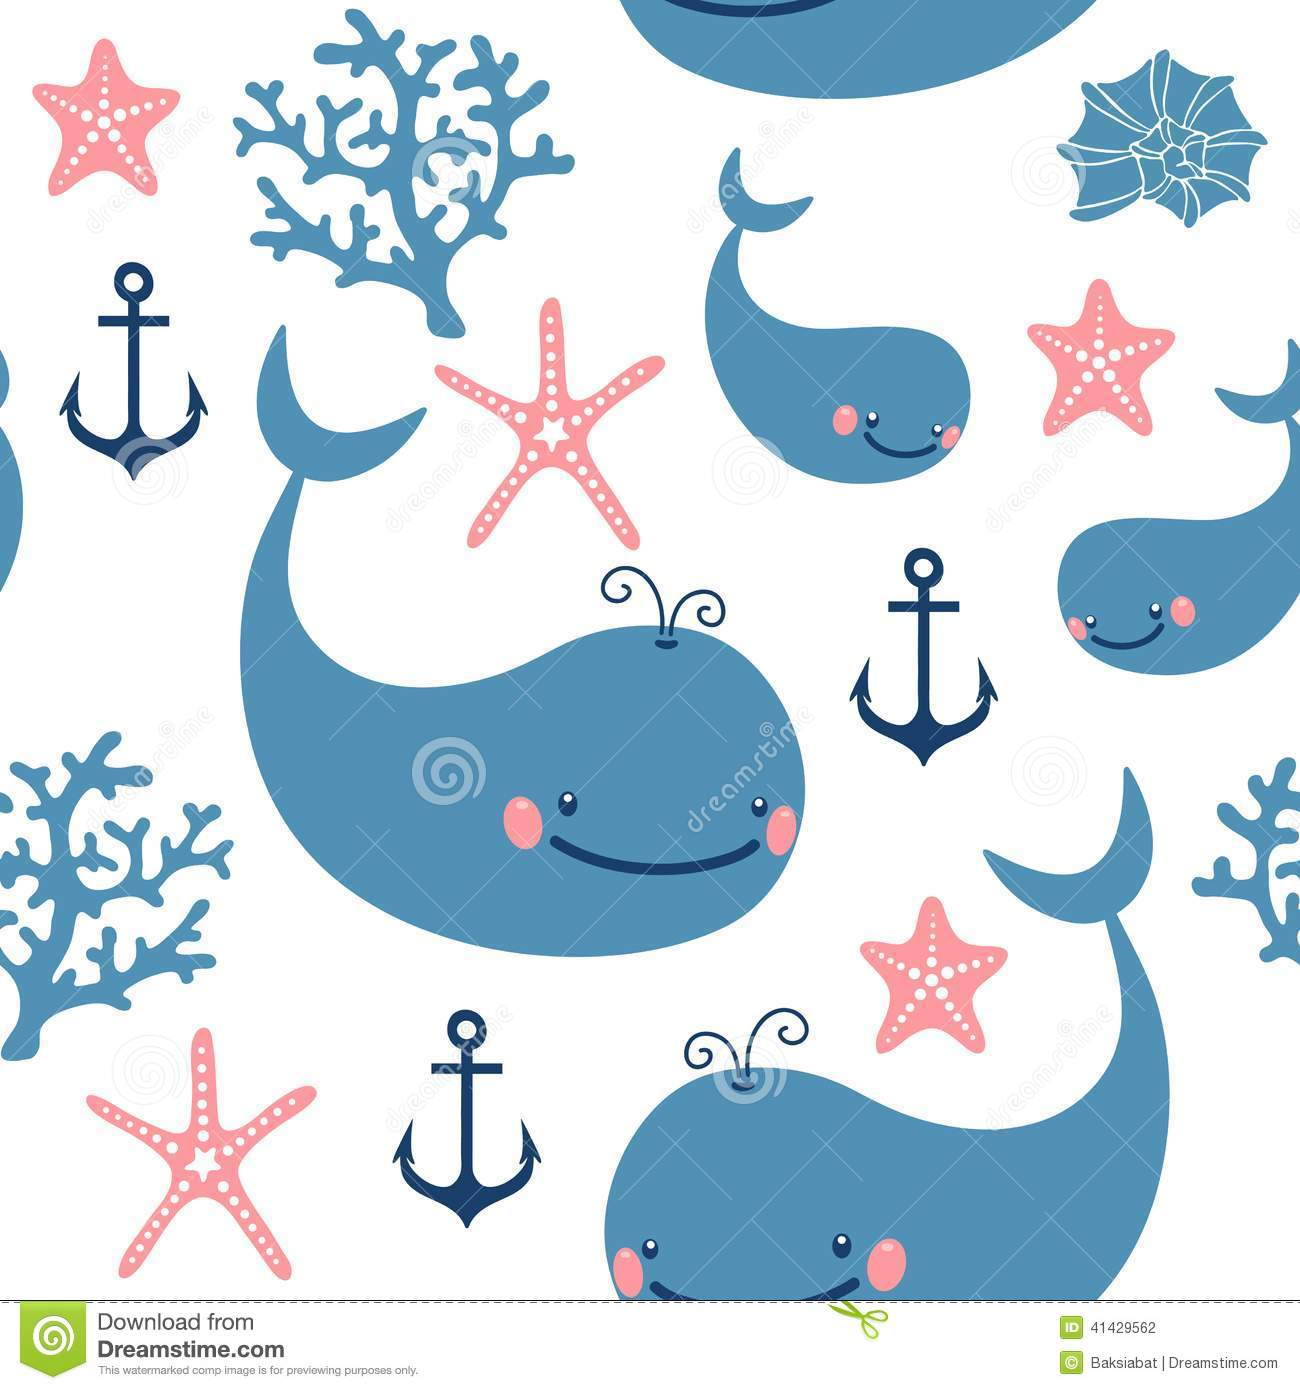 Cute Elephant Design Wallpaper Seamless Pattern With Cute Whales Stock Vector Image